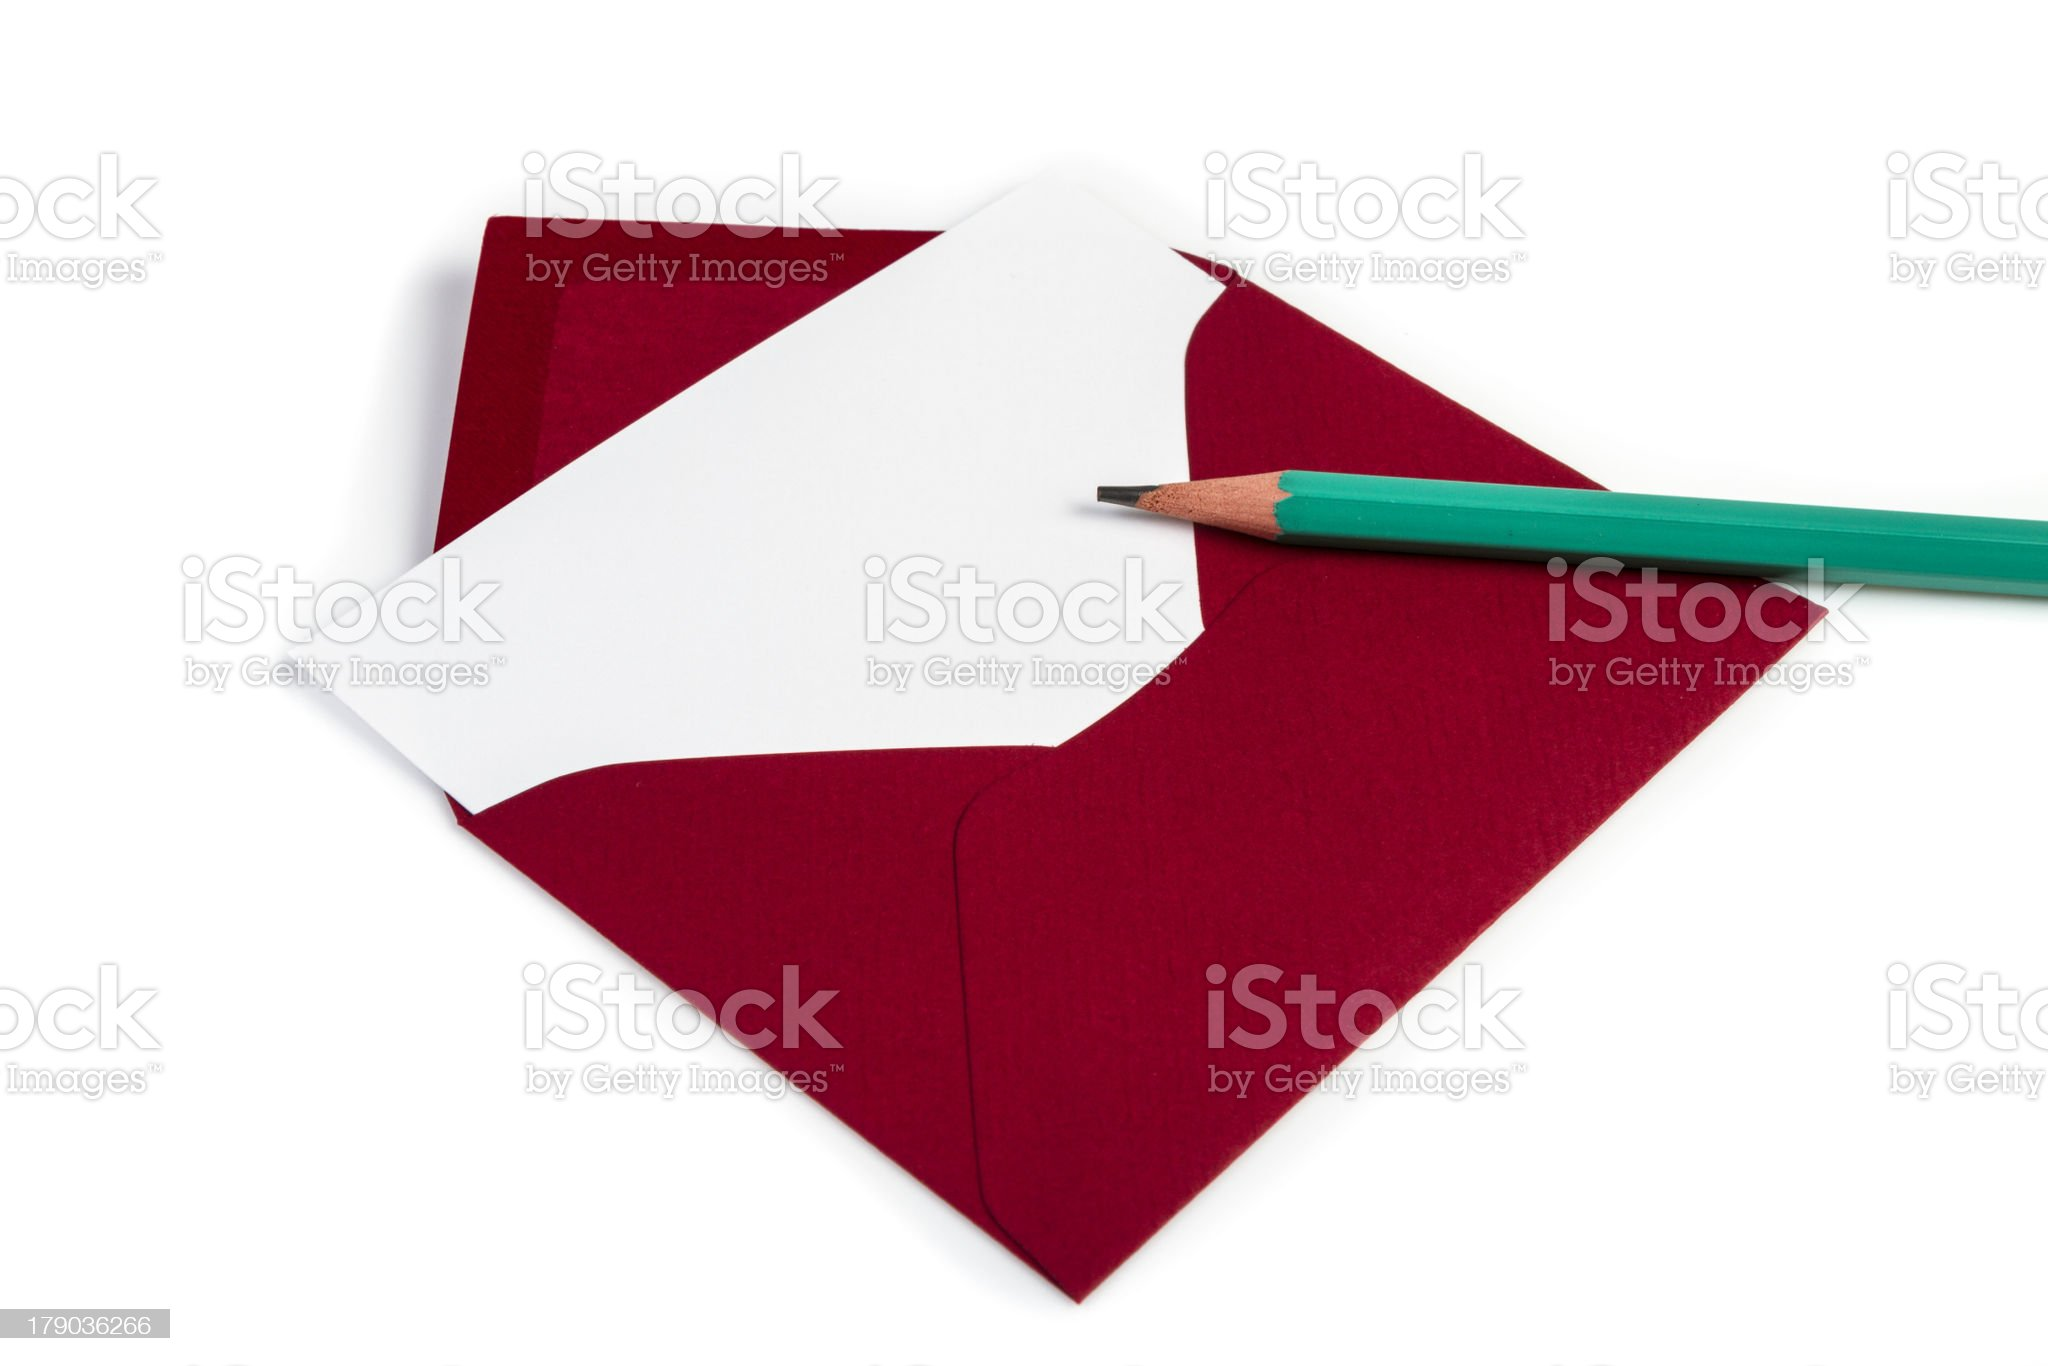 Red envelope with card and pencil (Clipping path) royalty-free stock photo